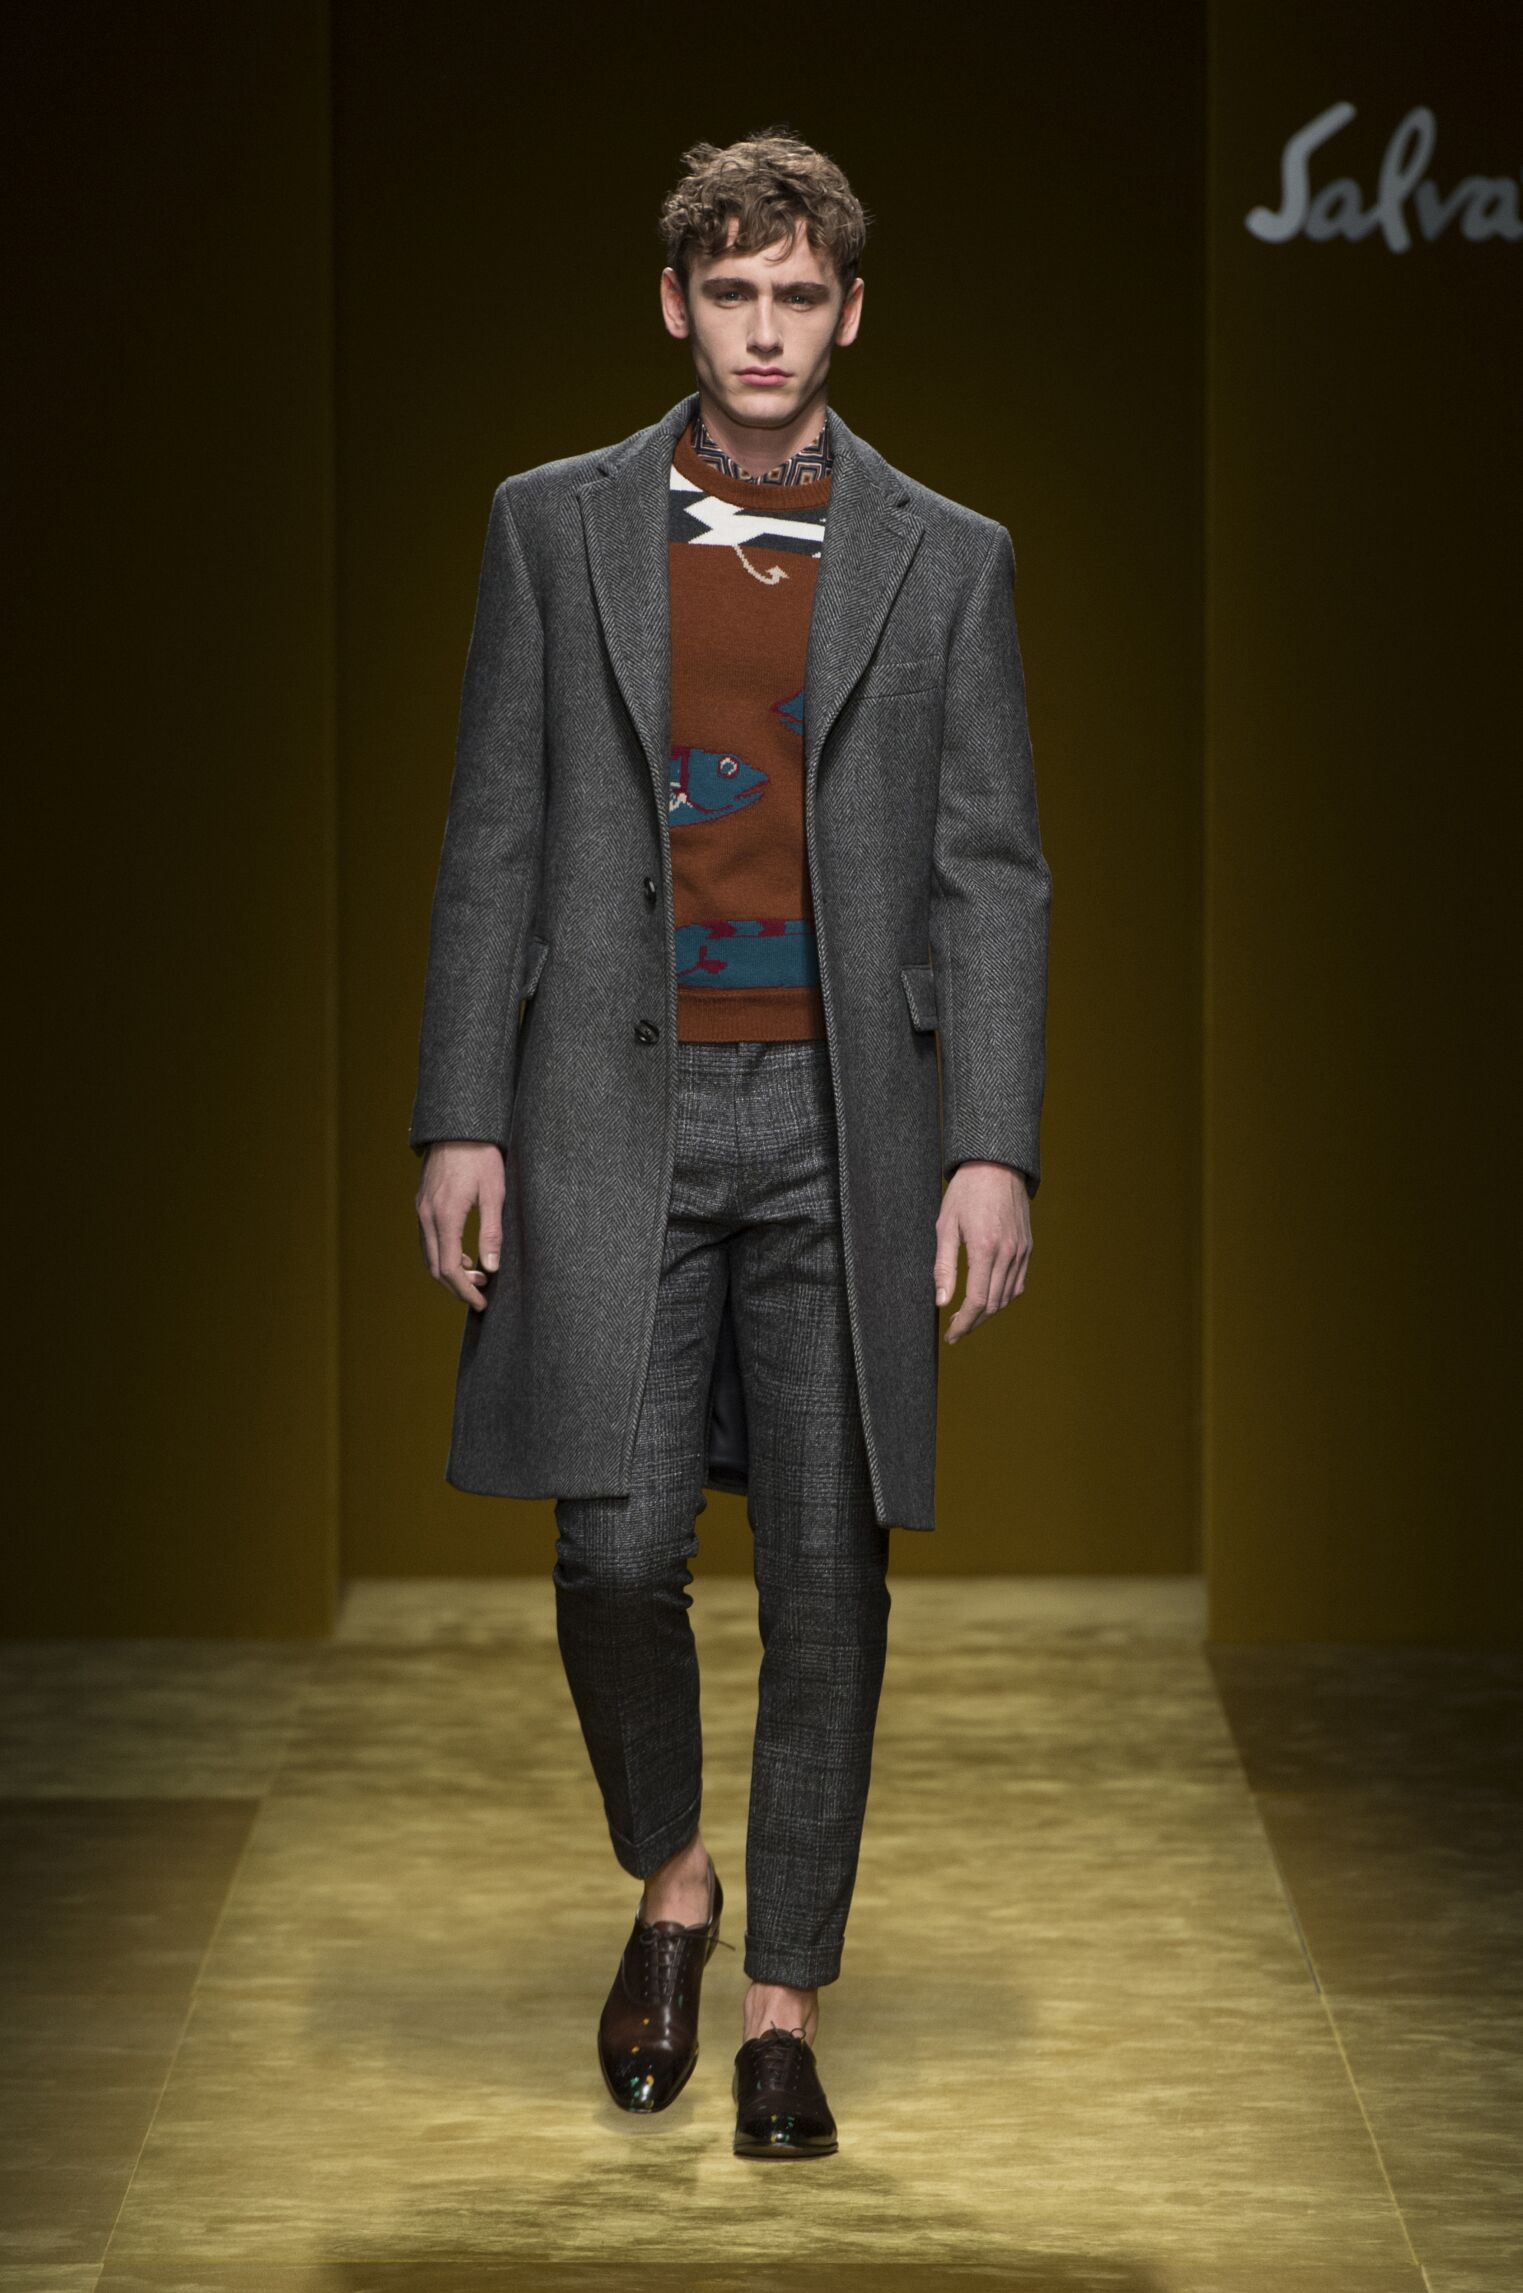 Winter Fashion Trends 2016-17 Salvatore Ferragamo